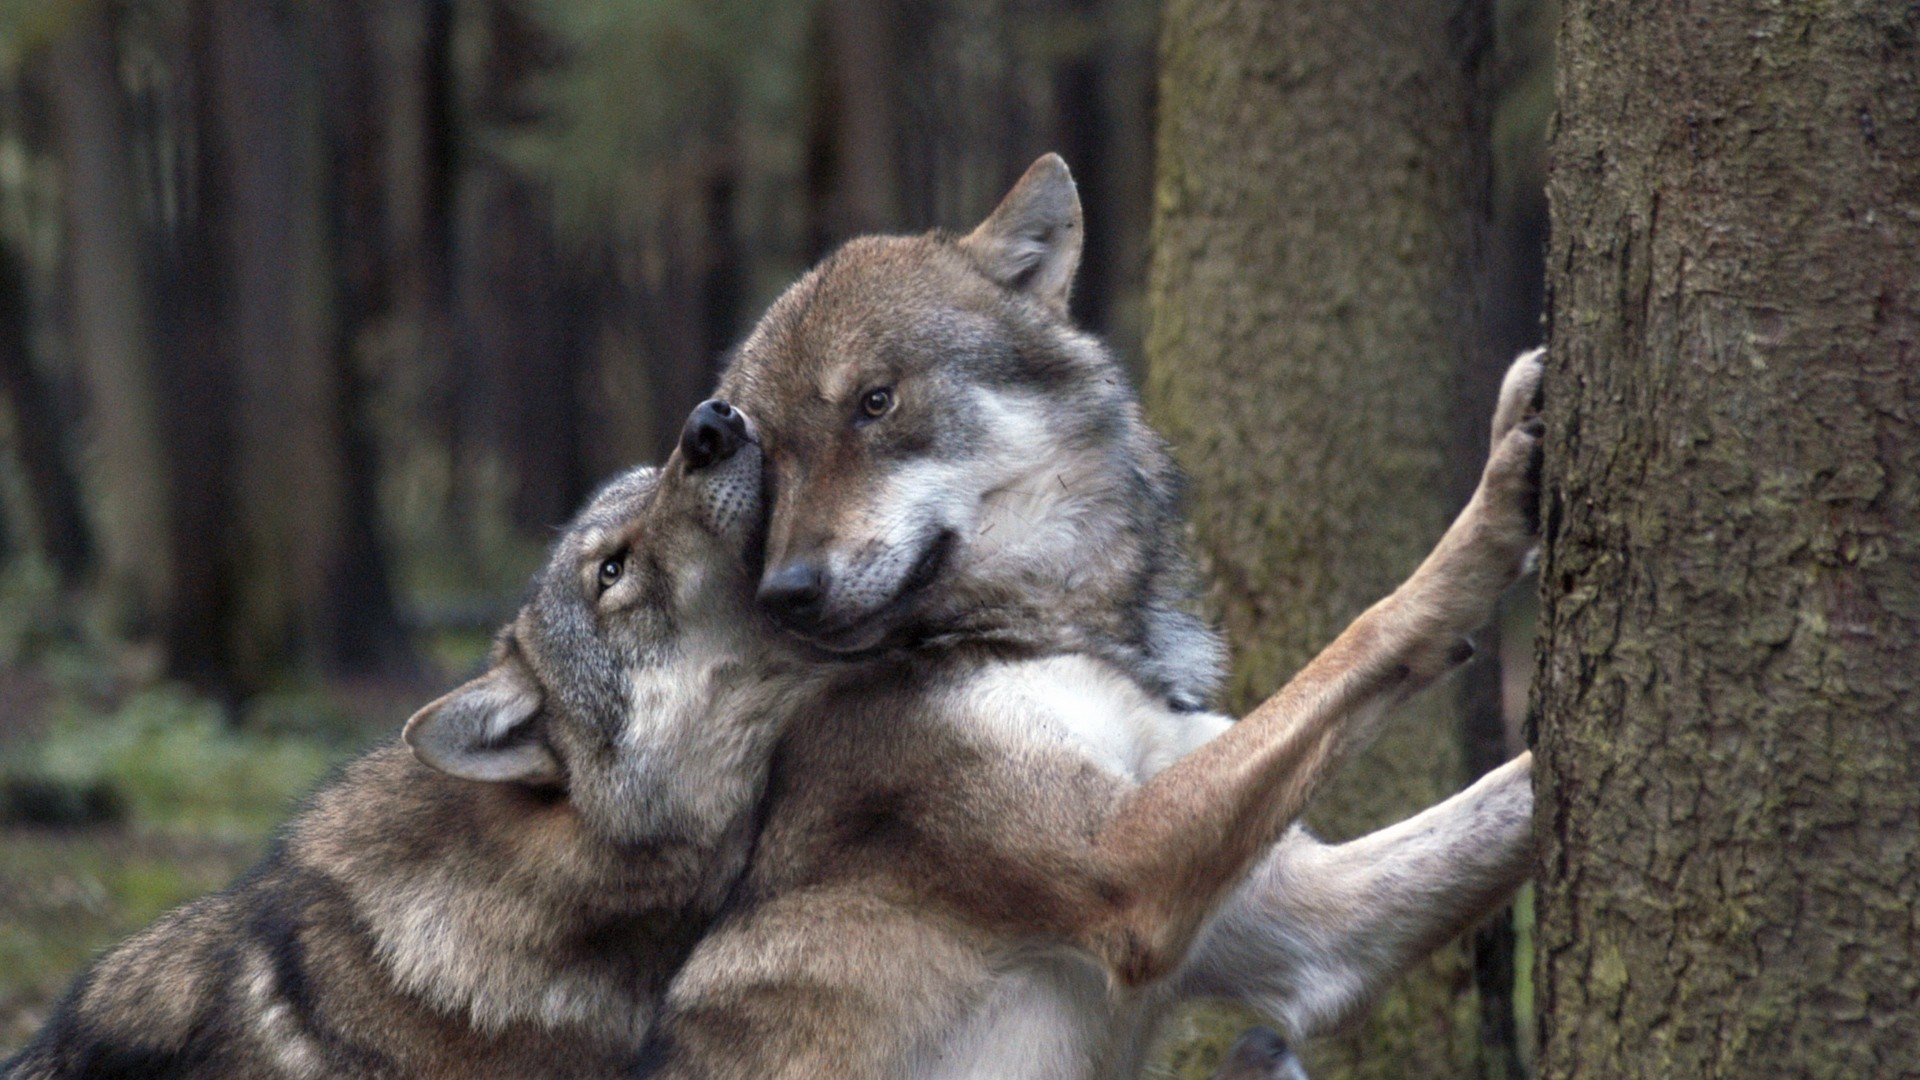 Cute Couple Romance Wallpaper Wolves In Love Wallpapers 53 Images